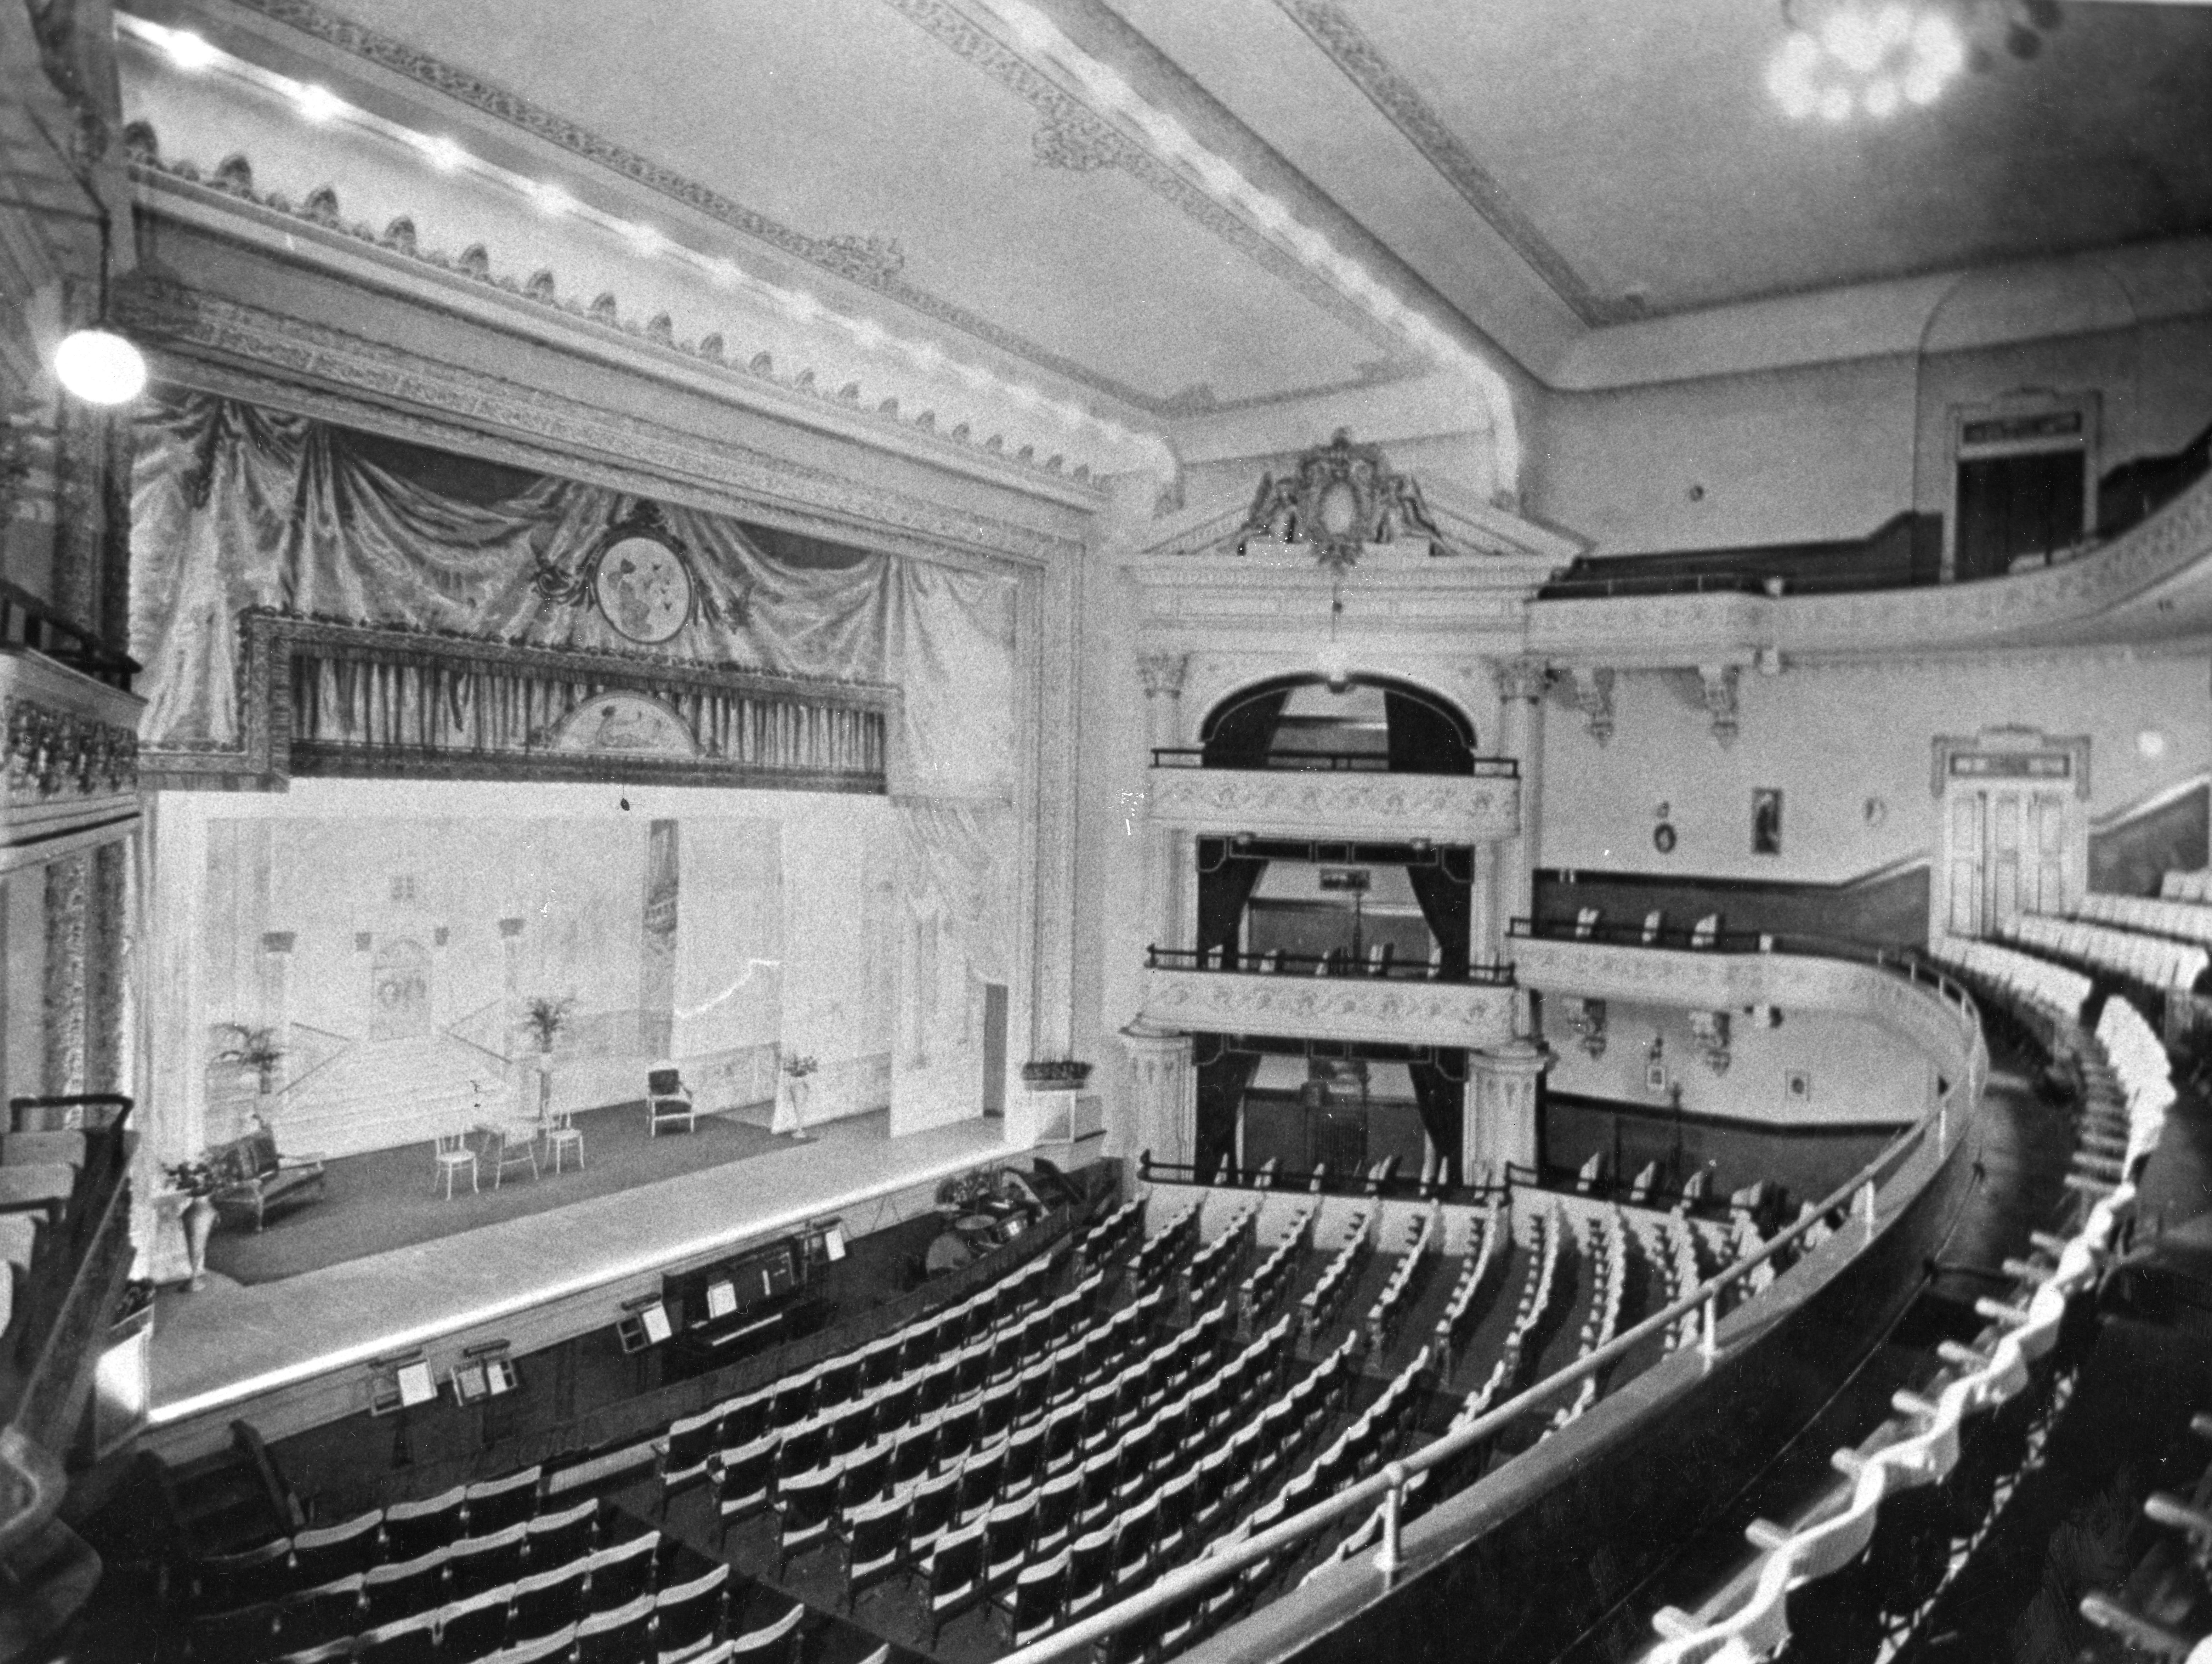 A view of the Bijou Theatre around the turn of the century.